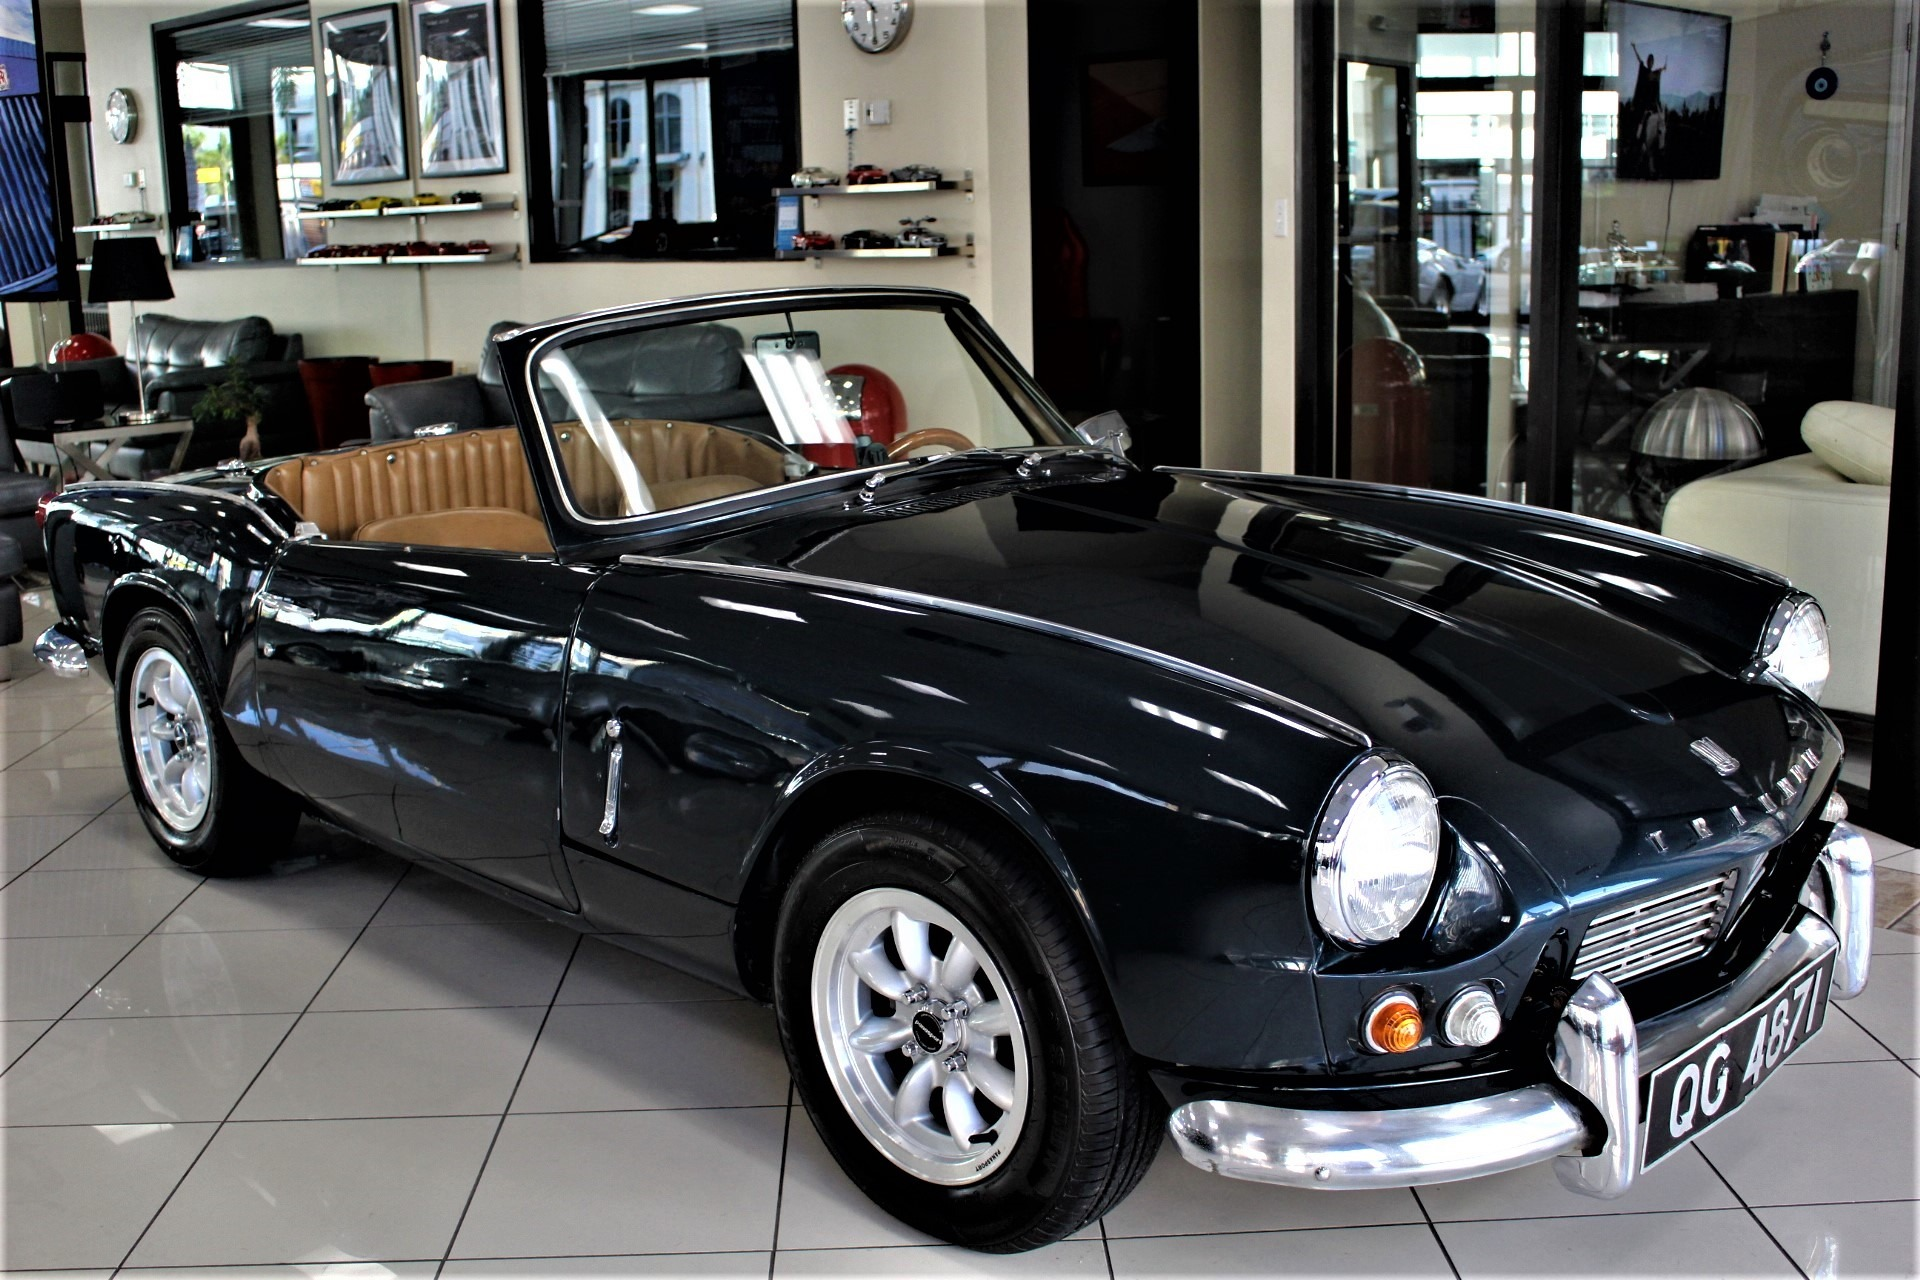 Used 1967 Triumph Spitfire for sale Sold at The Gables Sports Cars in Miami FL 33146 2